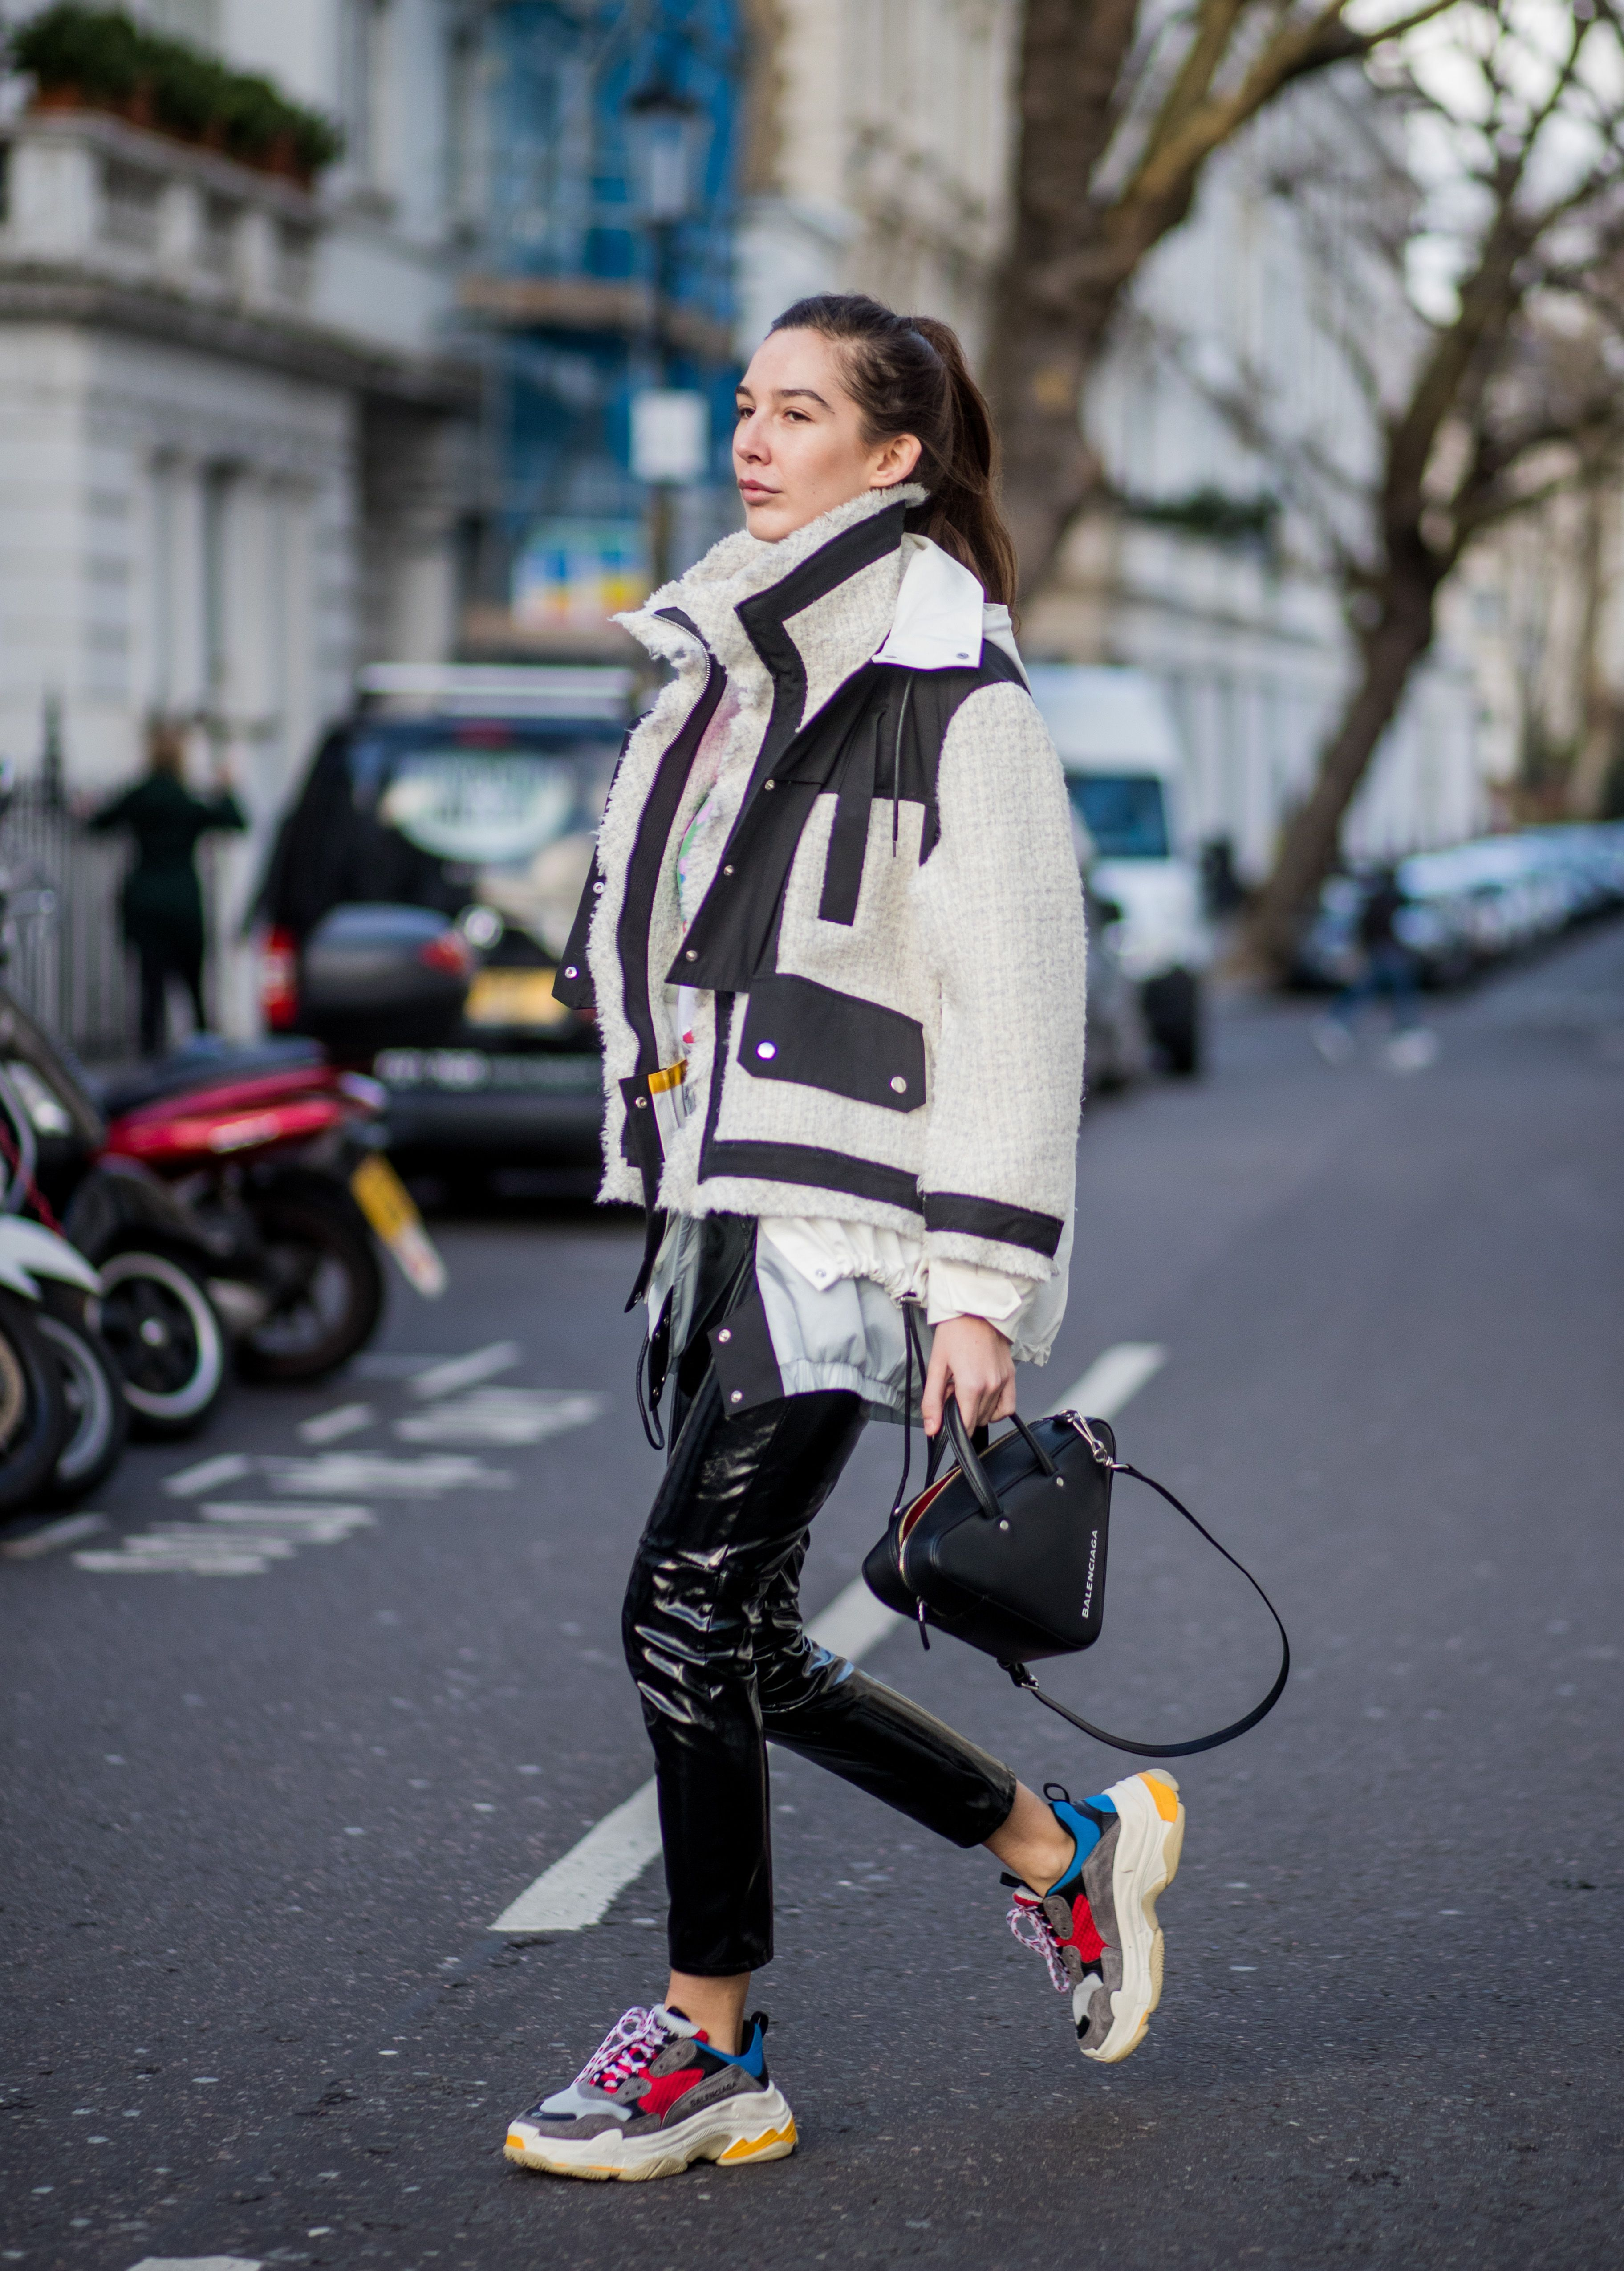 f8f8bbb242f64e A Street Style Guide to Tomboy-Inspired Fashion